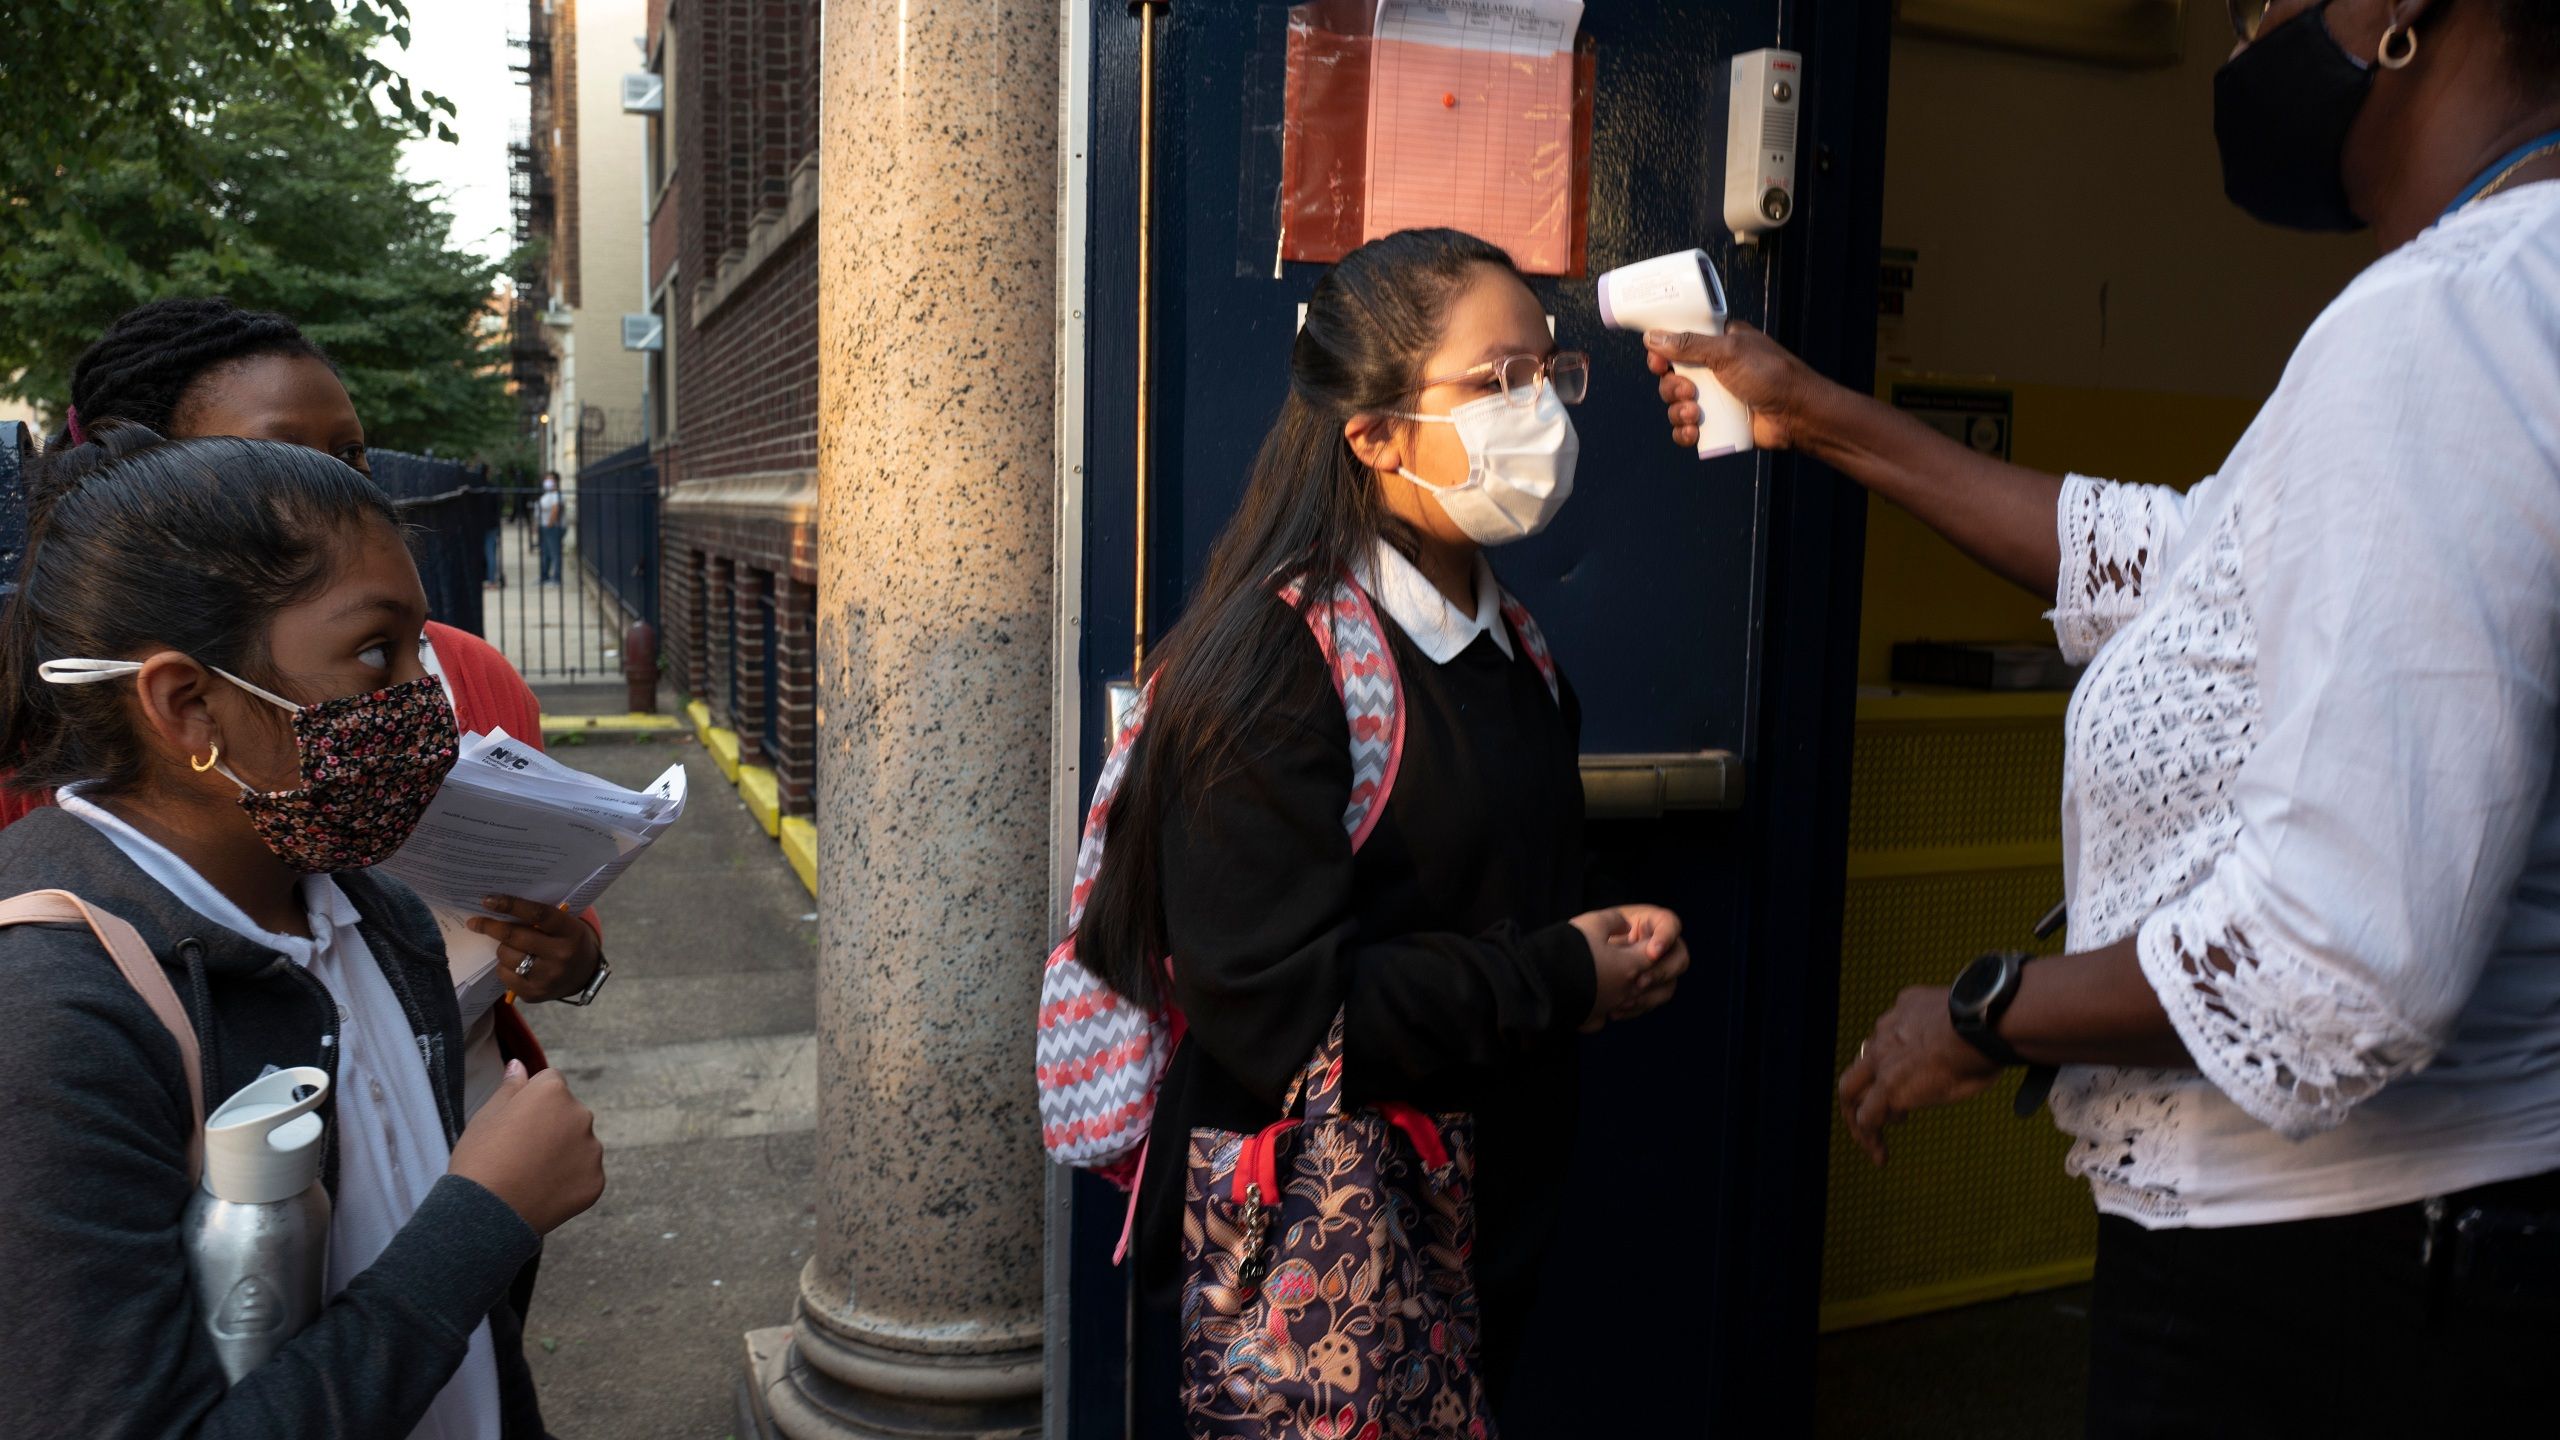 A girl has her temperature checked as she arrives for the first day of school at Brooklyn's PS 245 elementary school on Sept. 13, 2021, in New York. (Mark Lennihan/Associated Press)